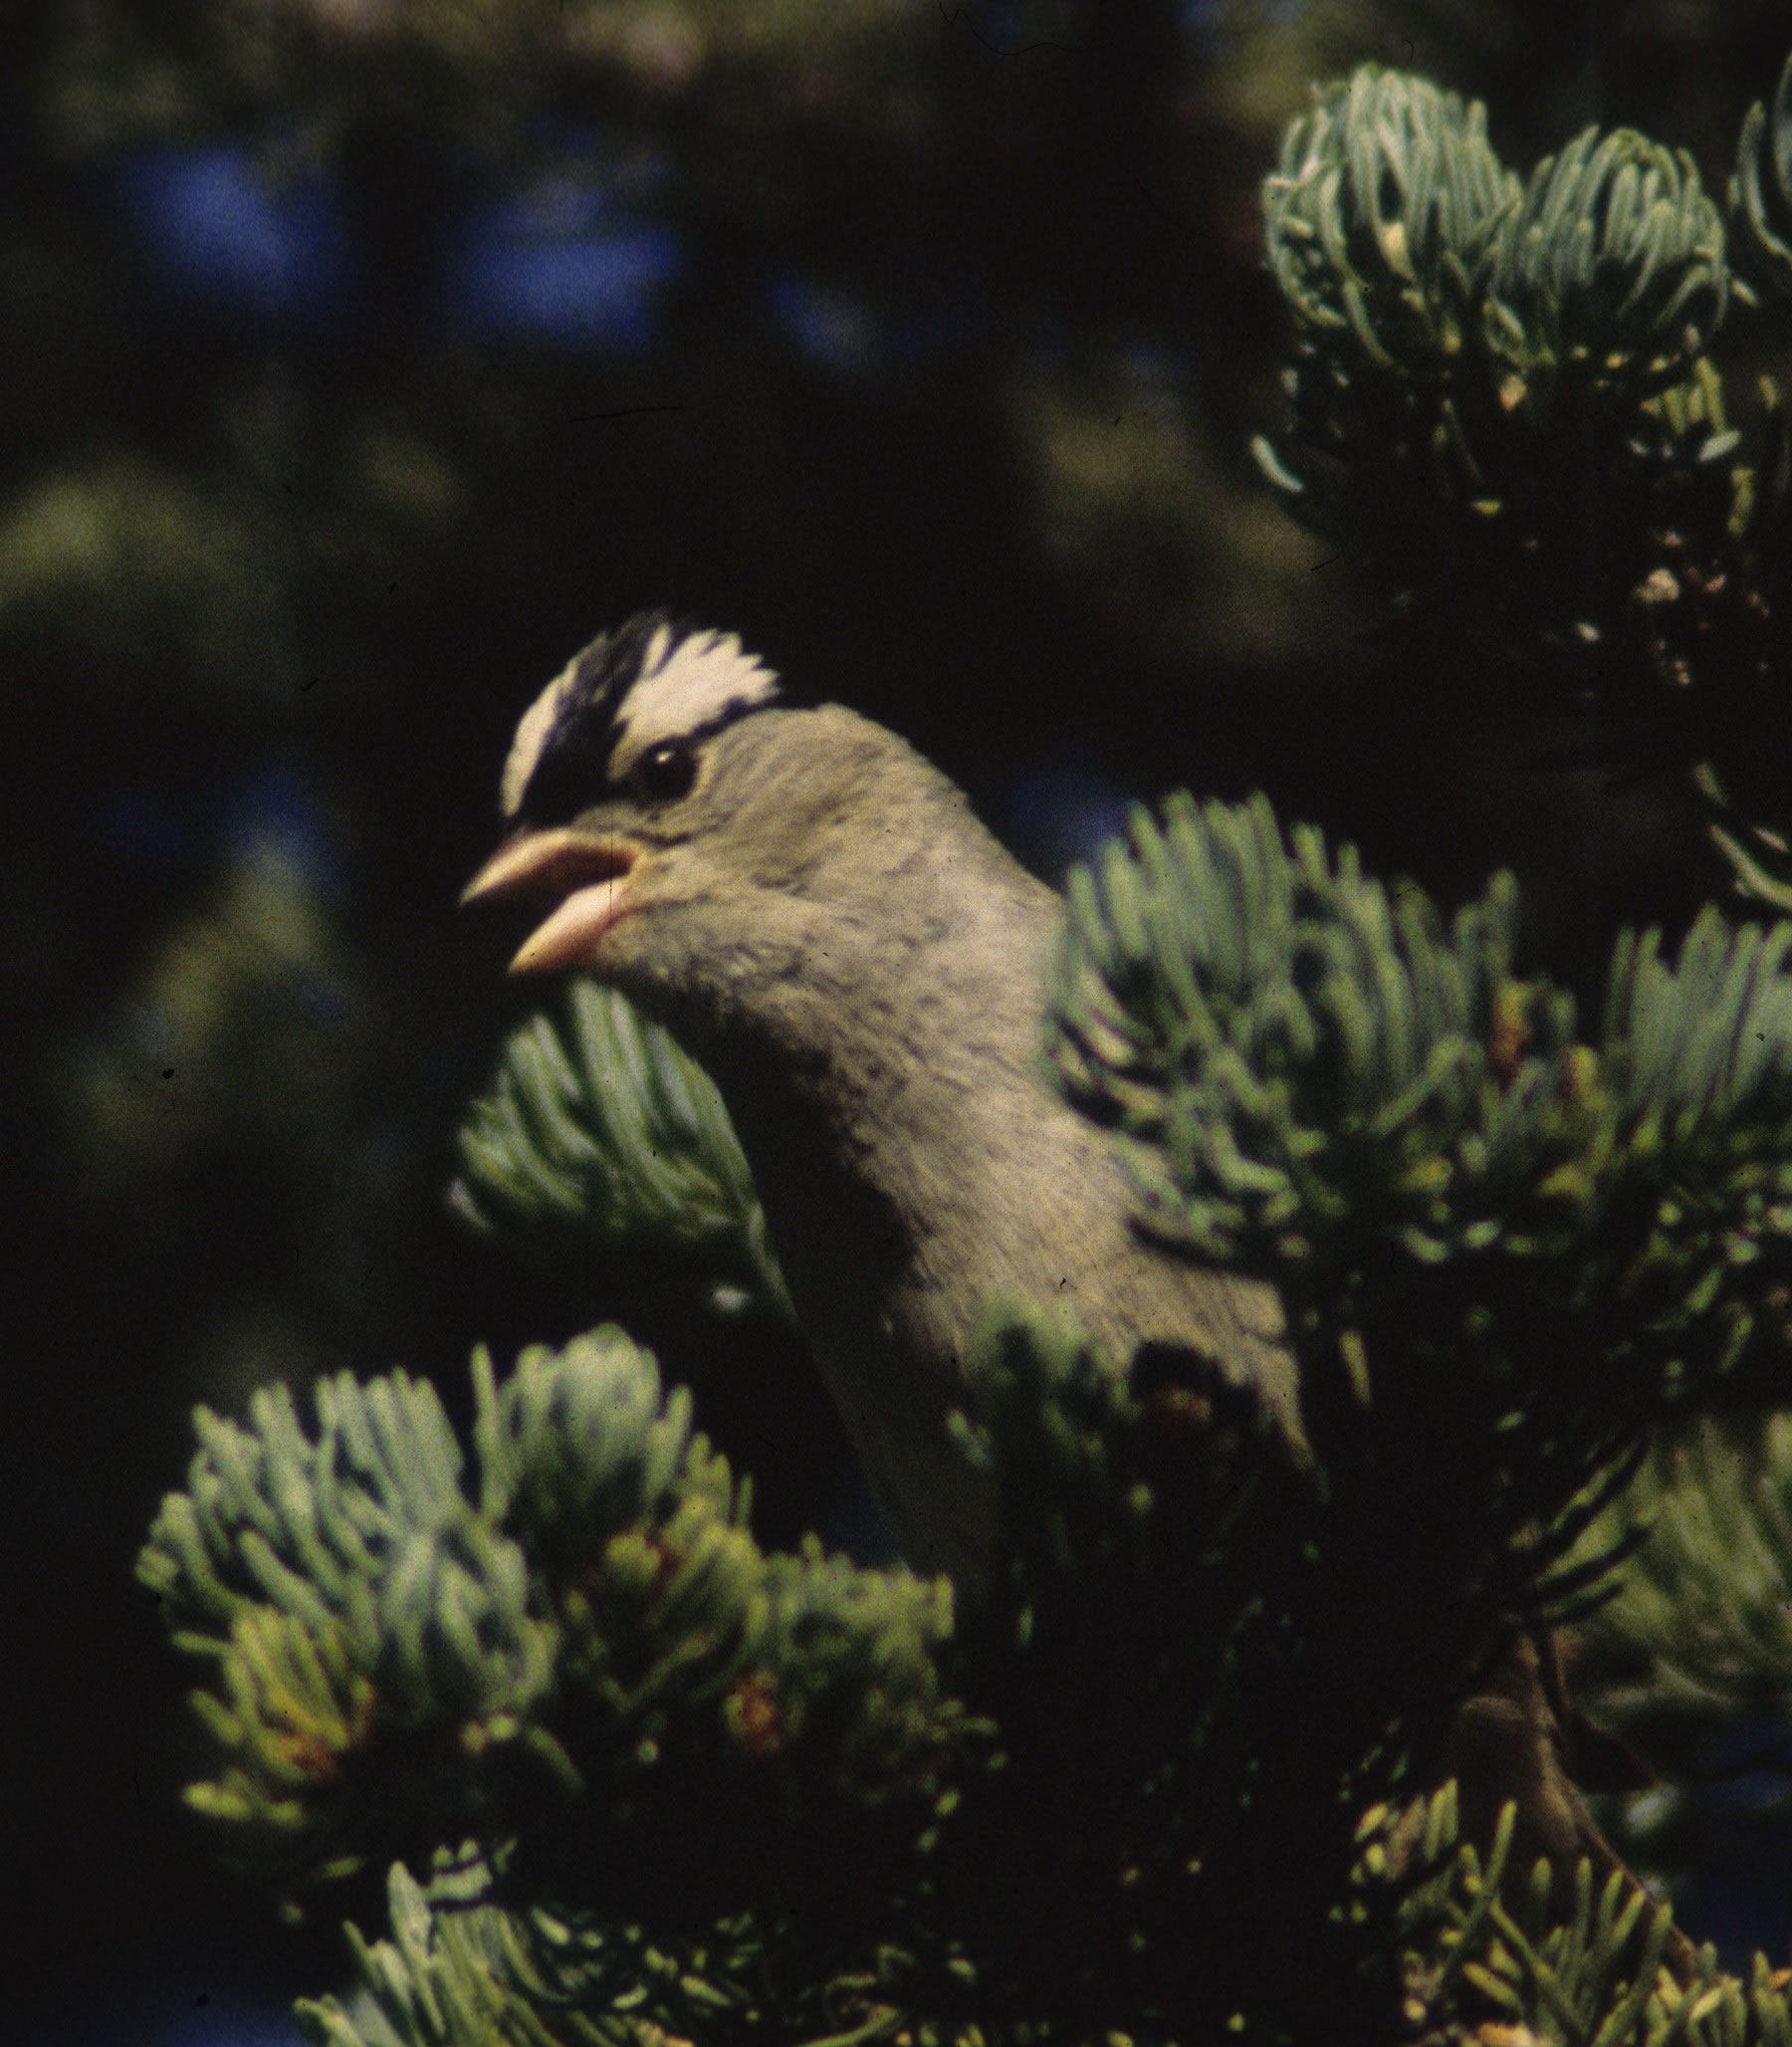 White-crowned sparrows, like this one shown singing in a tree, were used in a University of Utah study that examined how birds learn to sing -- and that may shed light on how humans learn to speak.